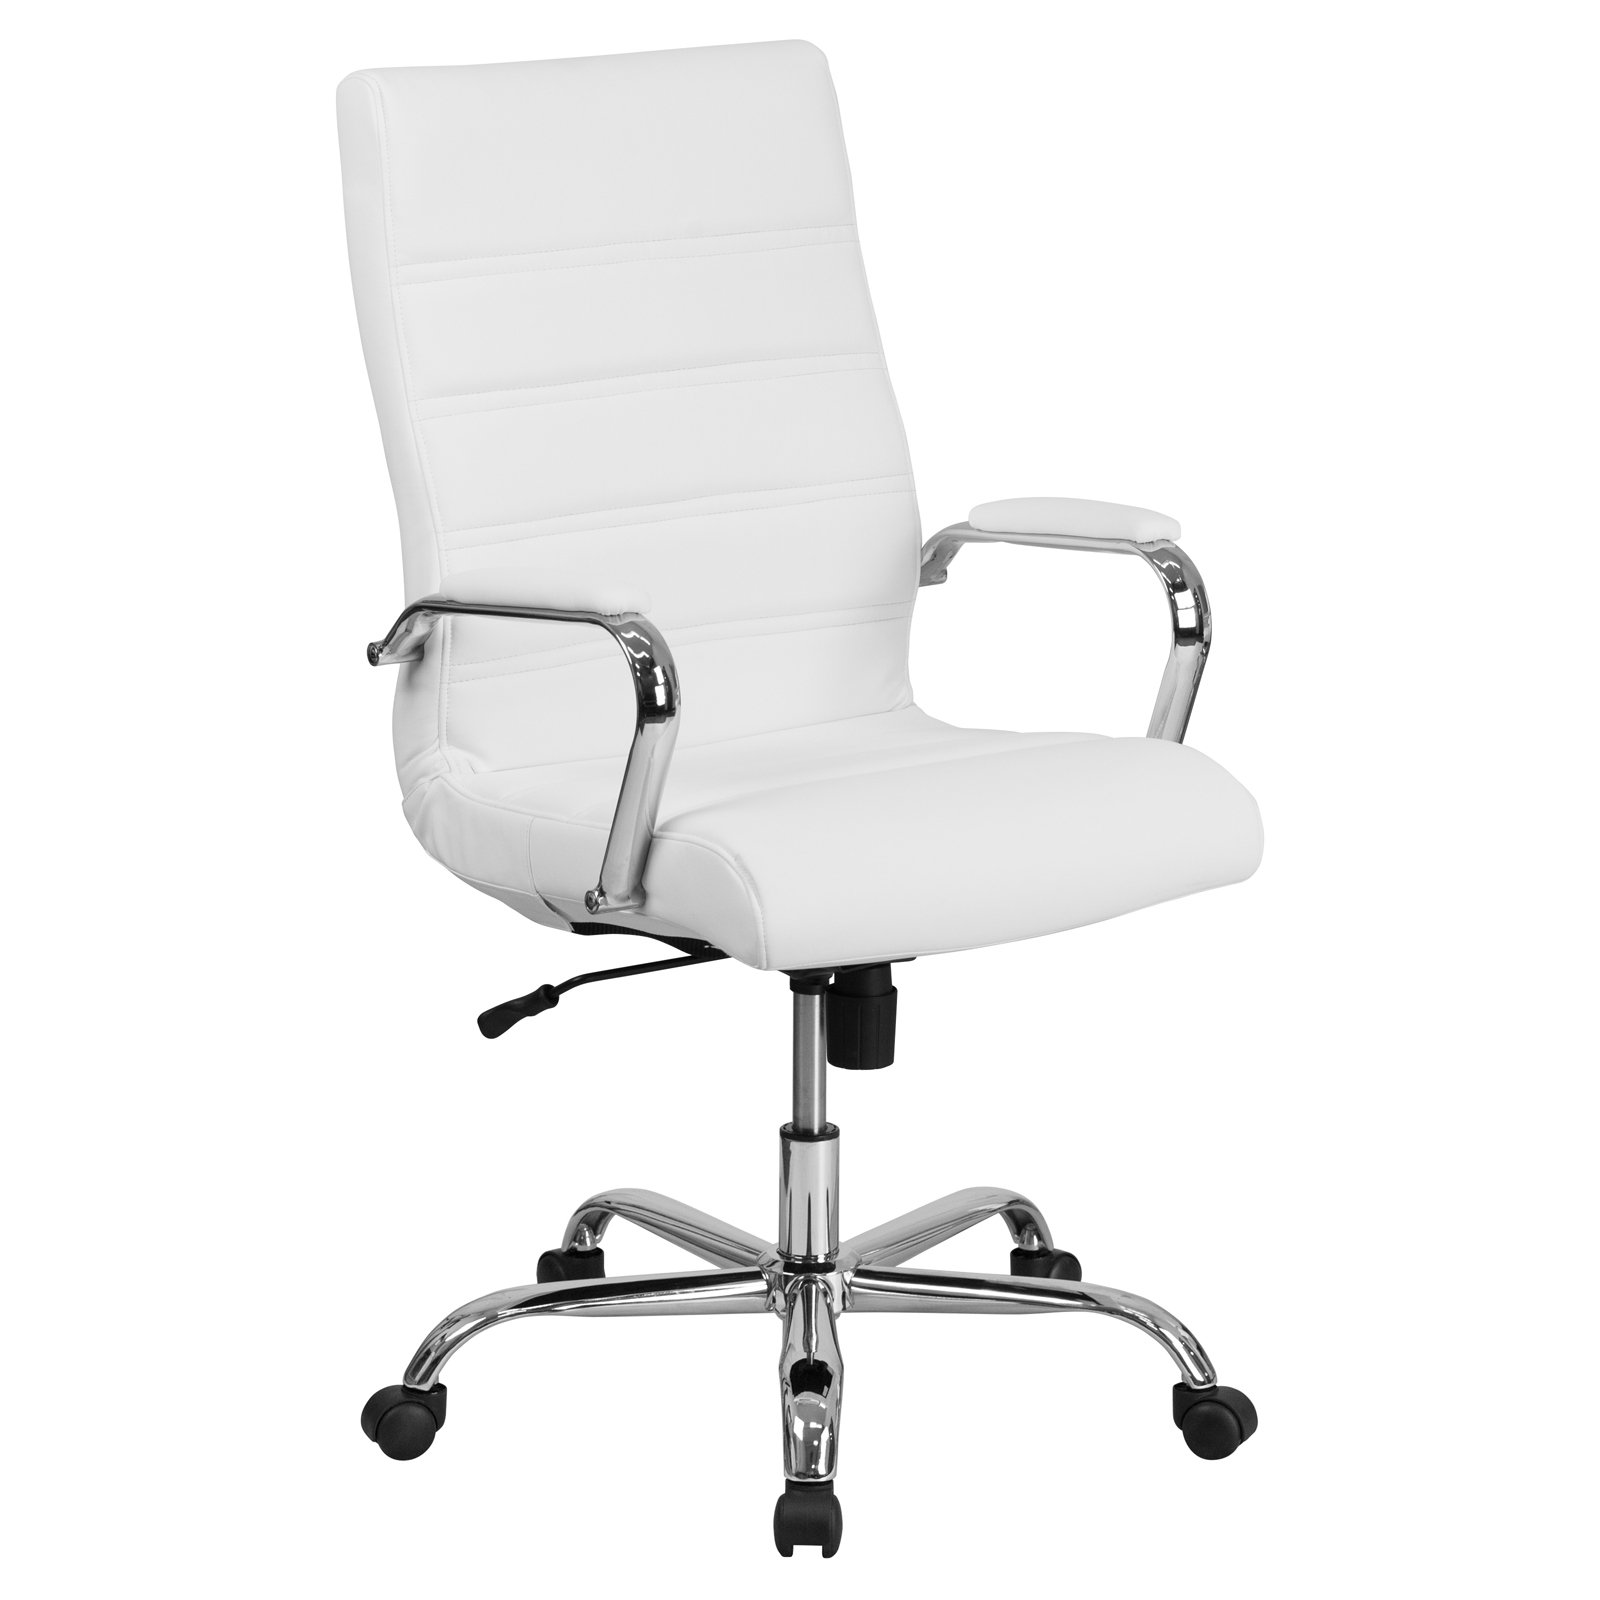 Beau Flash Furniture High Back White Leather Executive Swivel Office Chair With  Chrome Arms